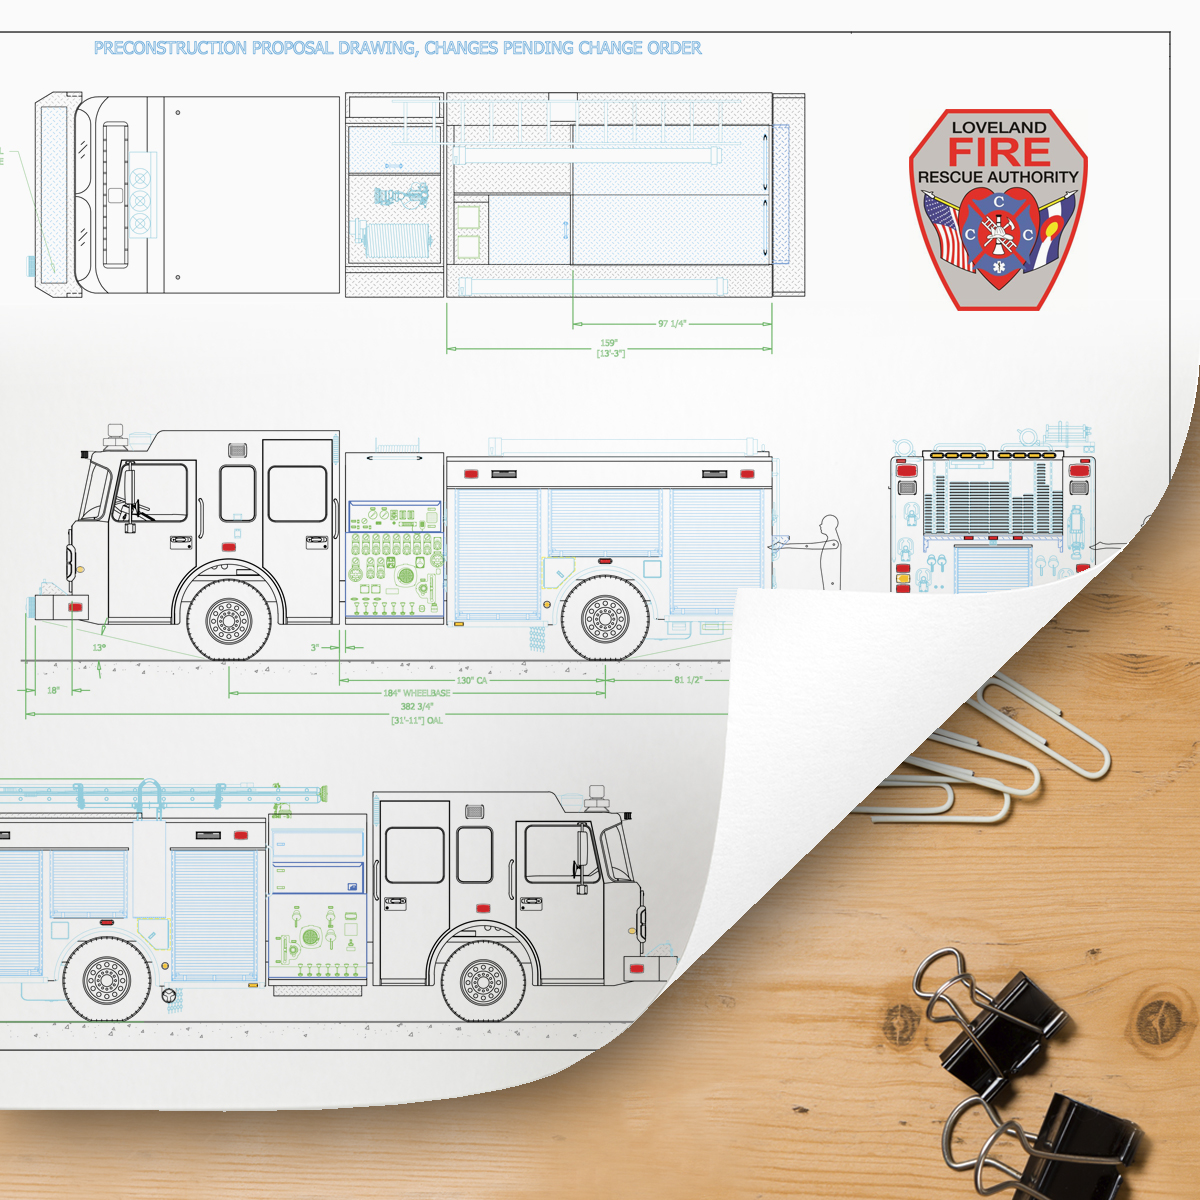 loveland custom fire trucks wildland truck & fire engine order fire truck turning radius diagram 15, 2018 loveland fire rescue authority officials have finalized plans to add two new custom fire trucks, built by svi trucks, one of the top fire